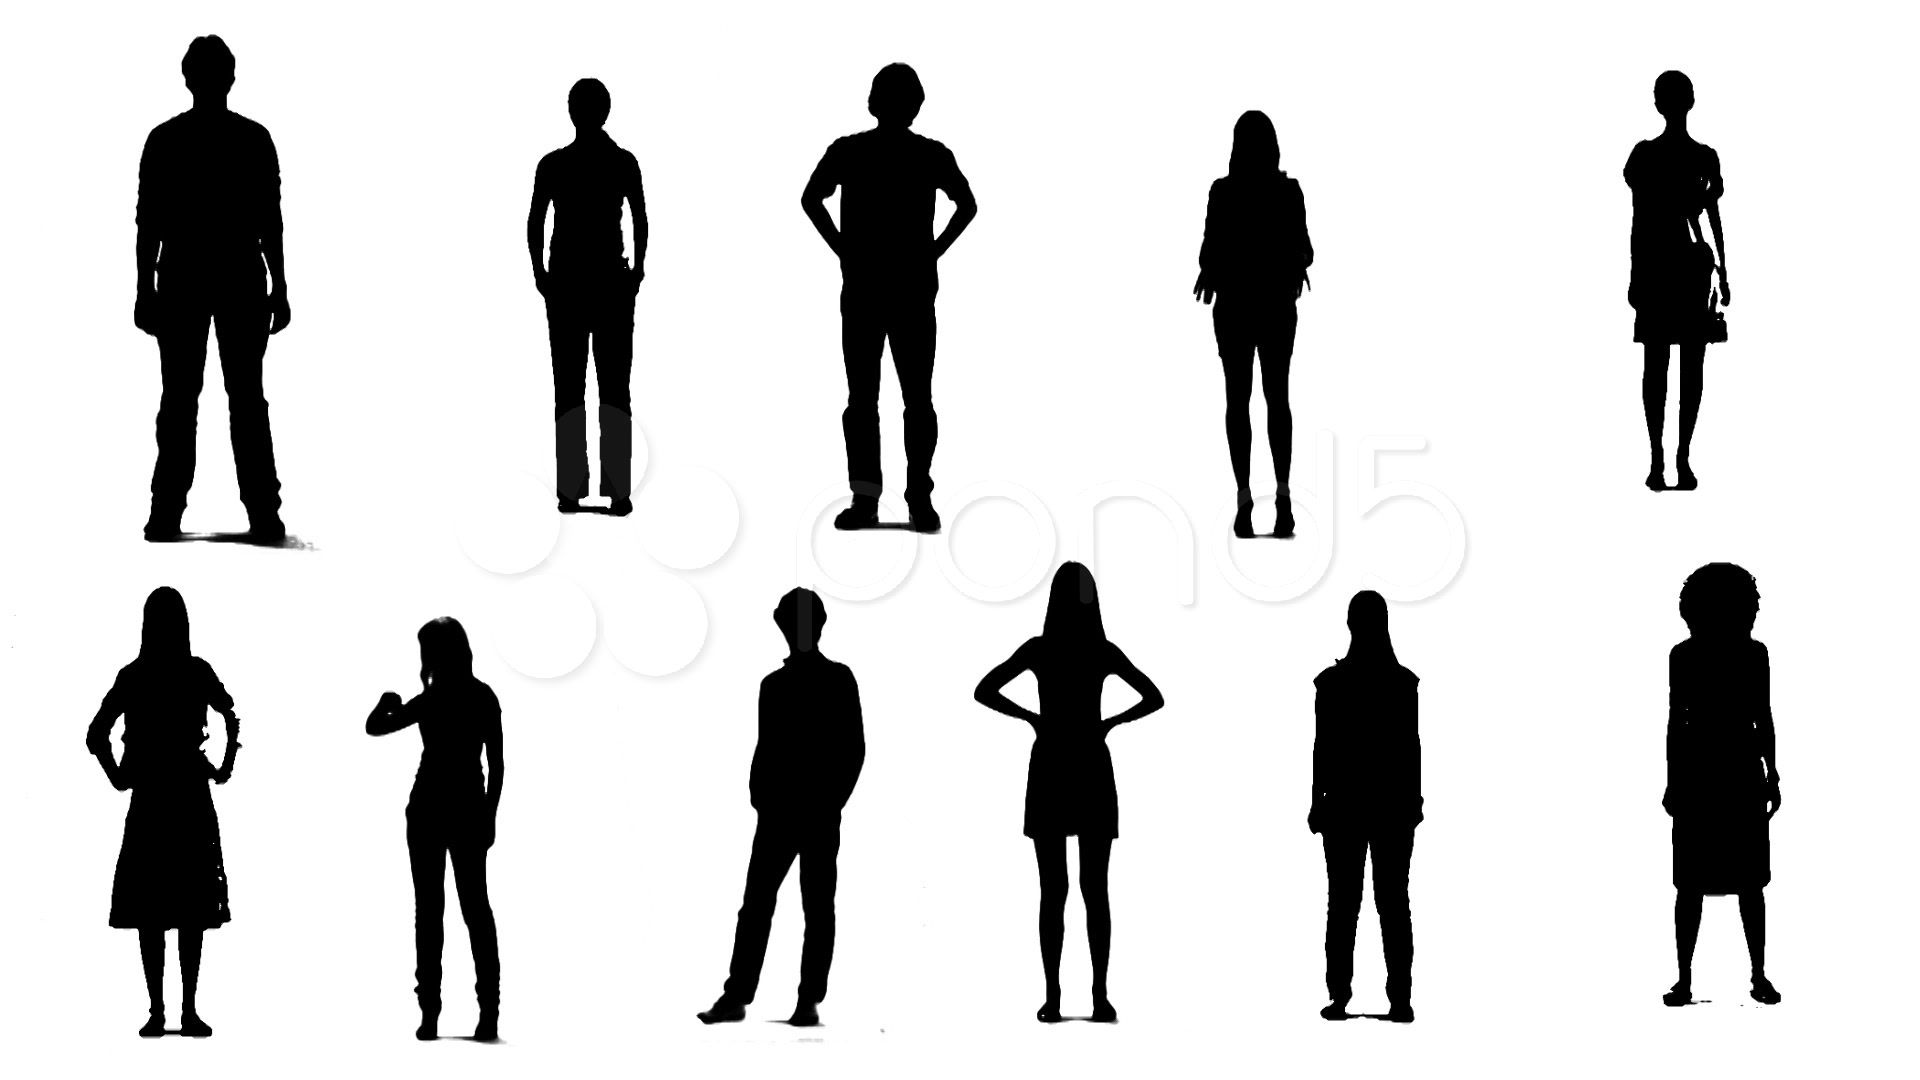 Silhouette Paintings Of People People Silhouette Google Search Textures Silhouette